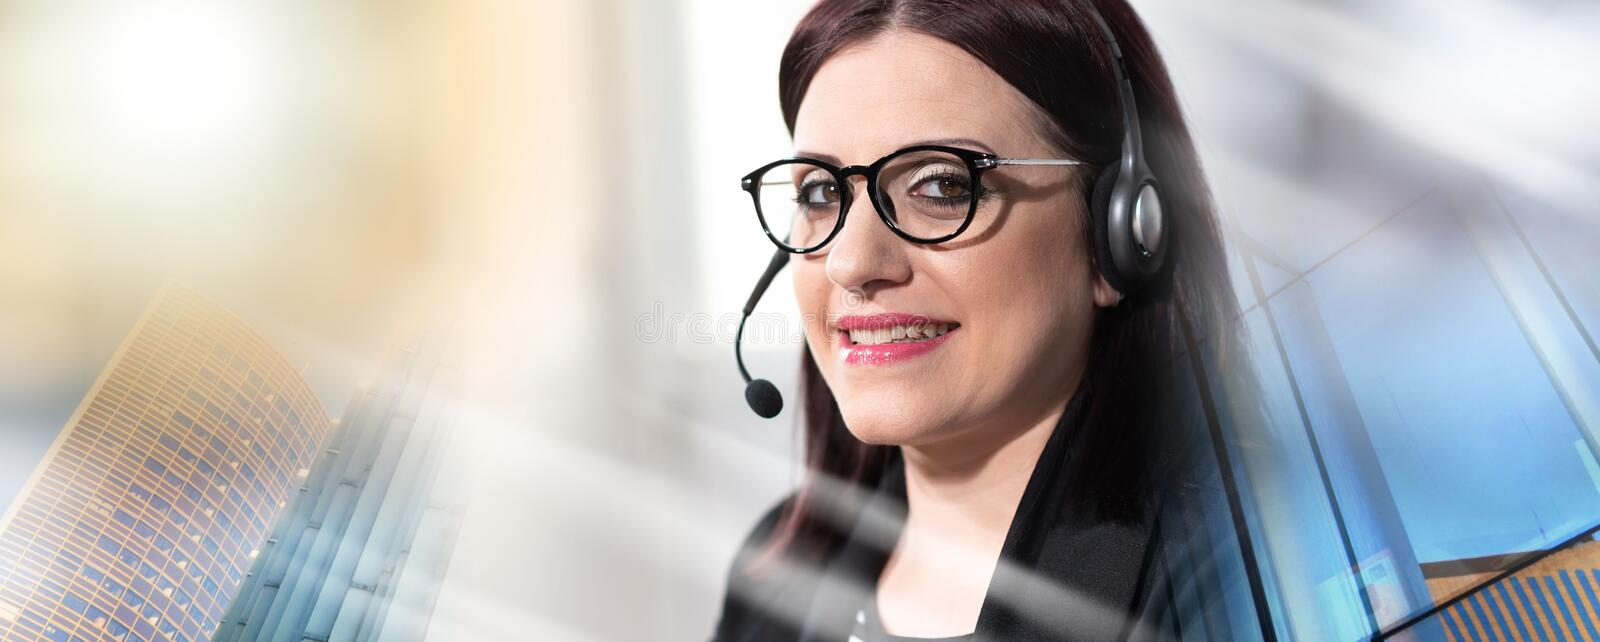 Portrait of female phone operator with headset; multiple exposure royalty free stock images